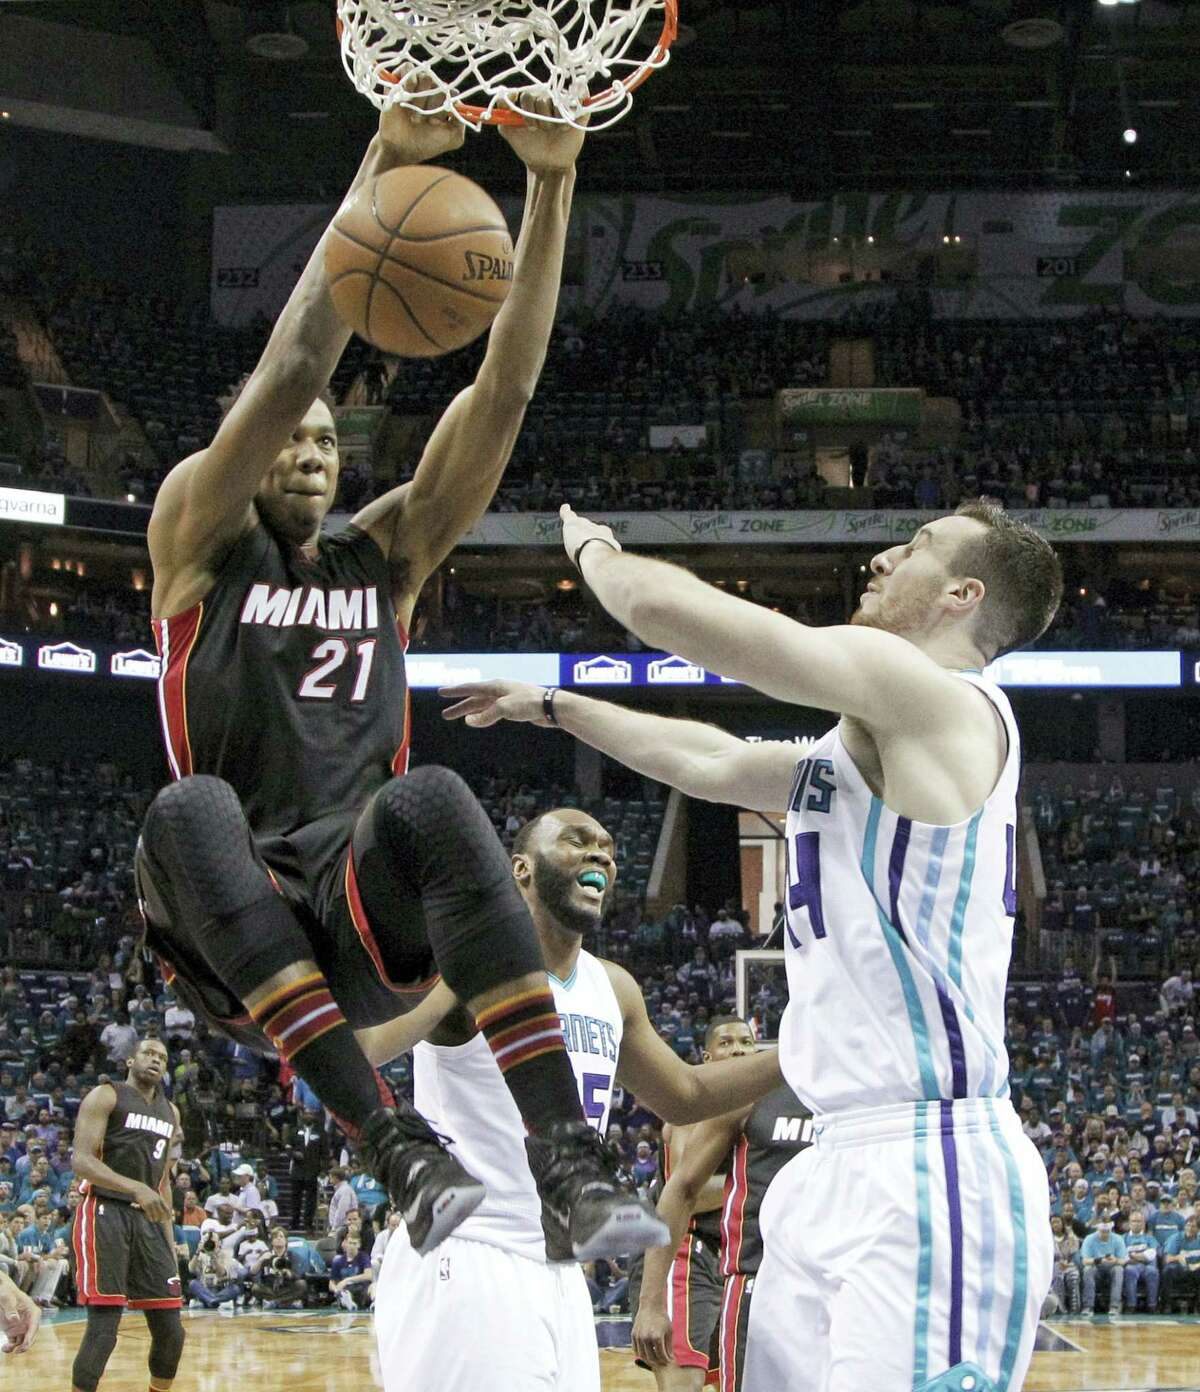 In this Monday, April 25, 2016 photo, Miami Heat's Hassan Whiteside (21) dunks over Charlotte Hornets' Frank Kaminsky (44) during the first half in Game 4 of an NBA basketball playoffs first-round series in Charlotte, N.C. Whiteside will be one of the most coveted targets when free agency begins FrIday, July 1, and there's no guarantee that the center whose career was resuscitated by the Miami Heat will be back with them next season.